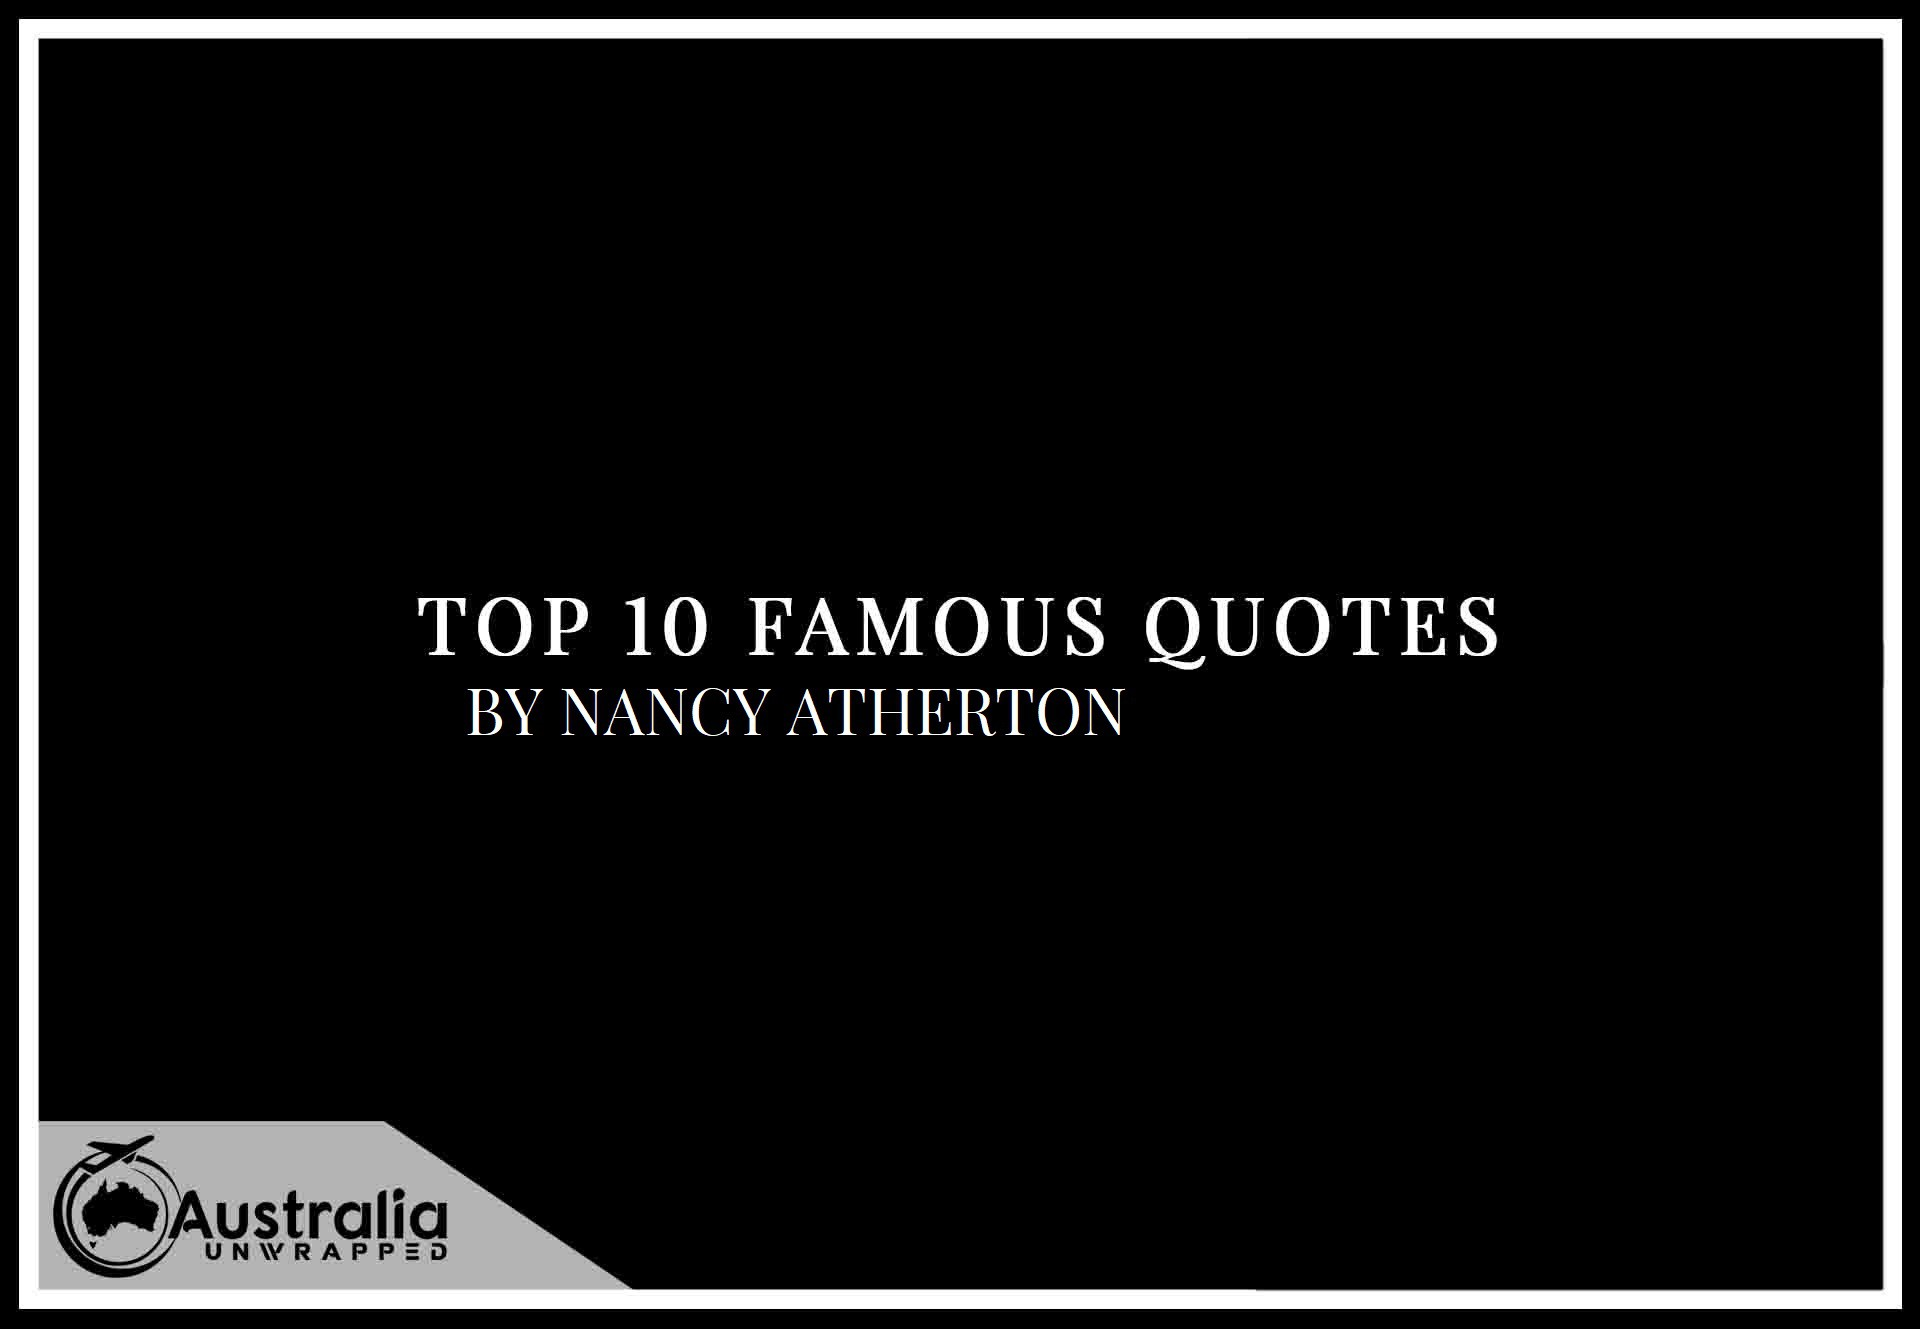 Top 10 Famous Quotes by Author Nancy Atherton